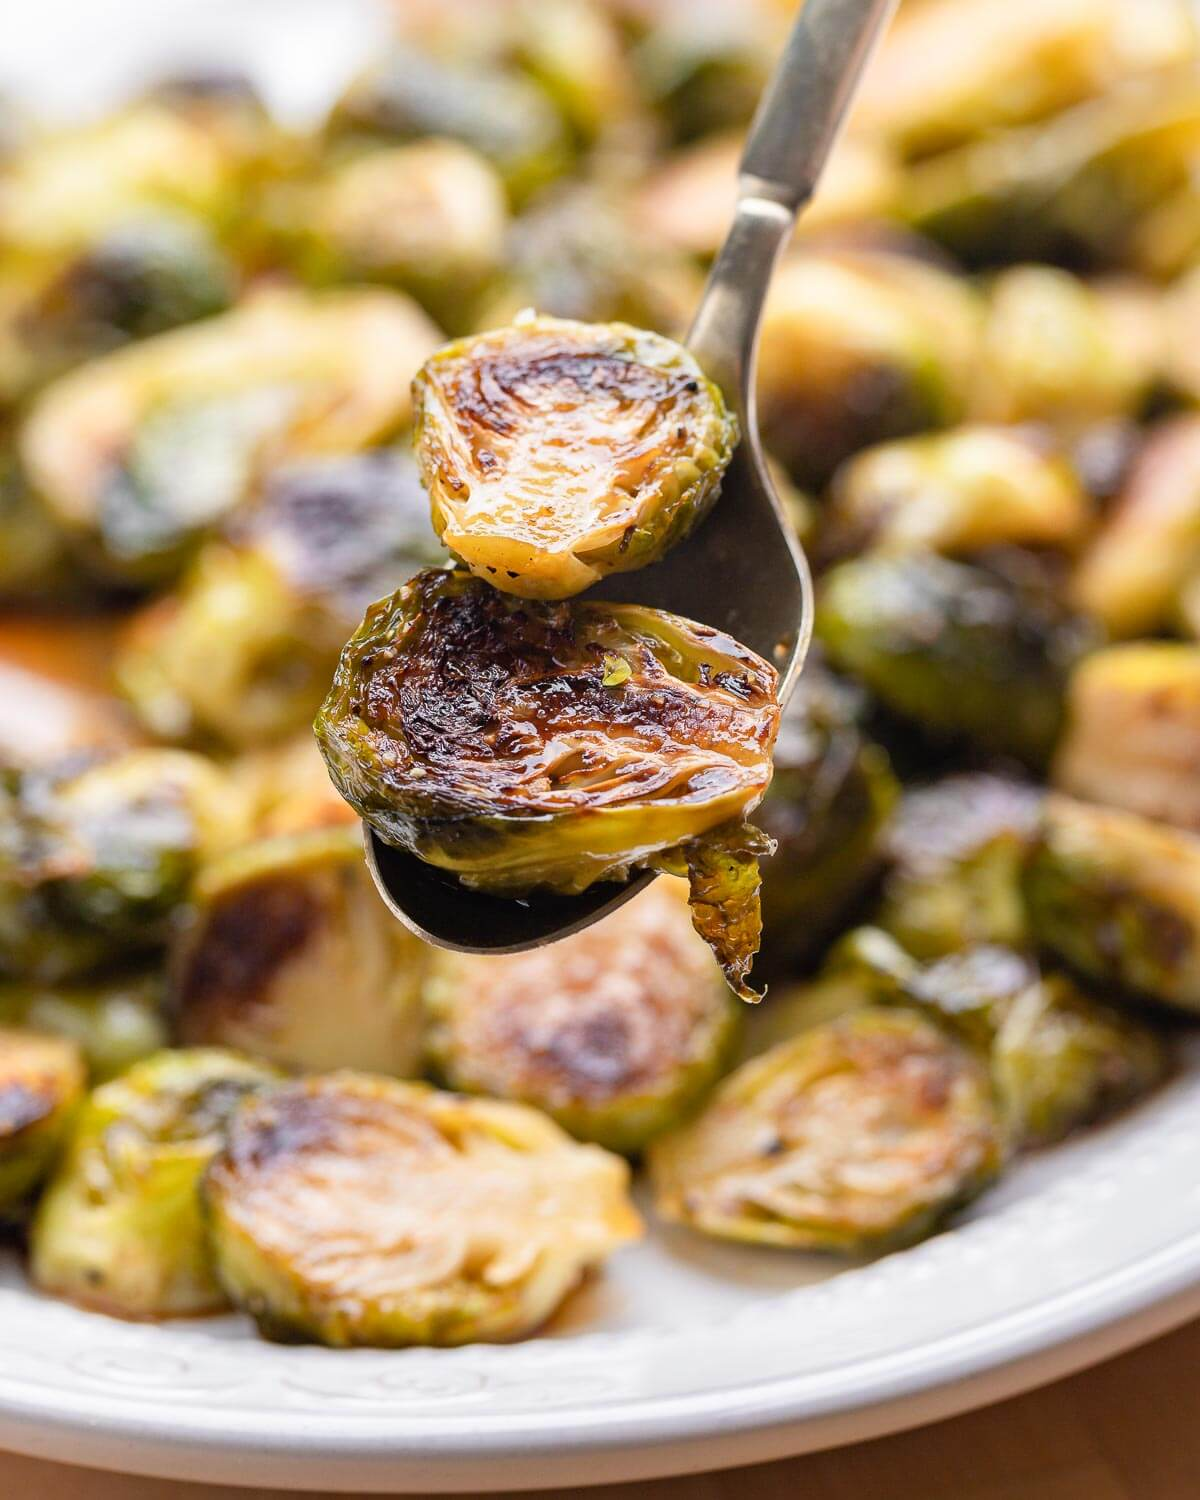 Spoon holding 2 pieces of roasted brussels sprouts.